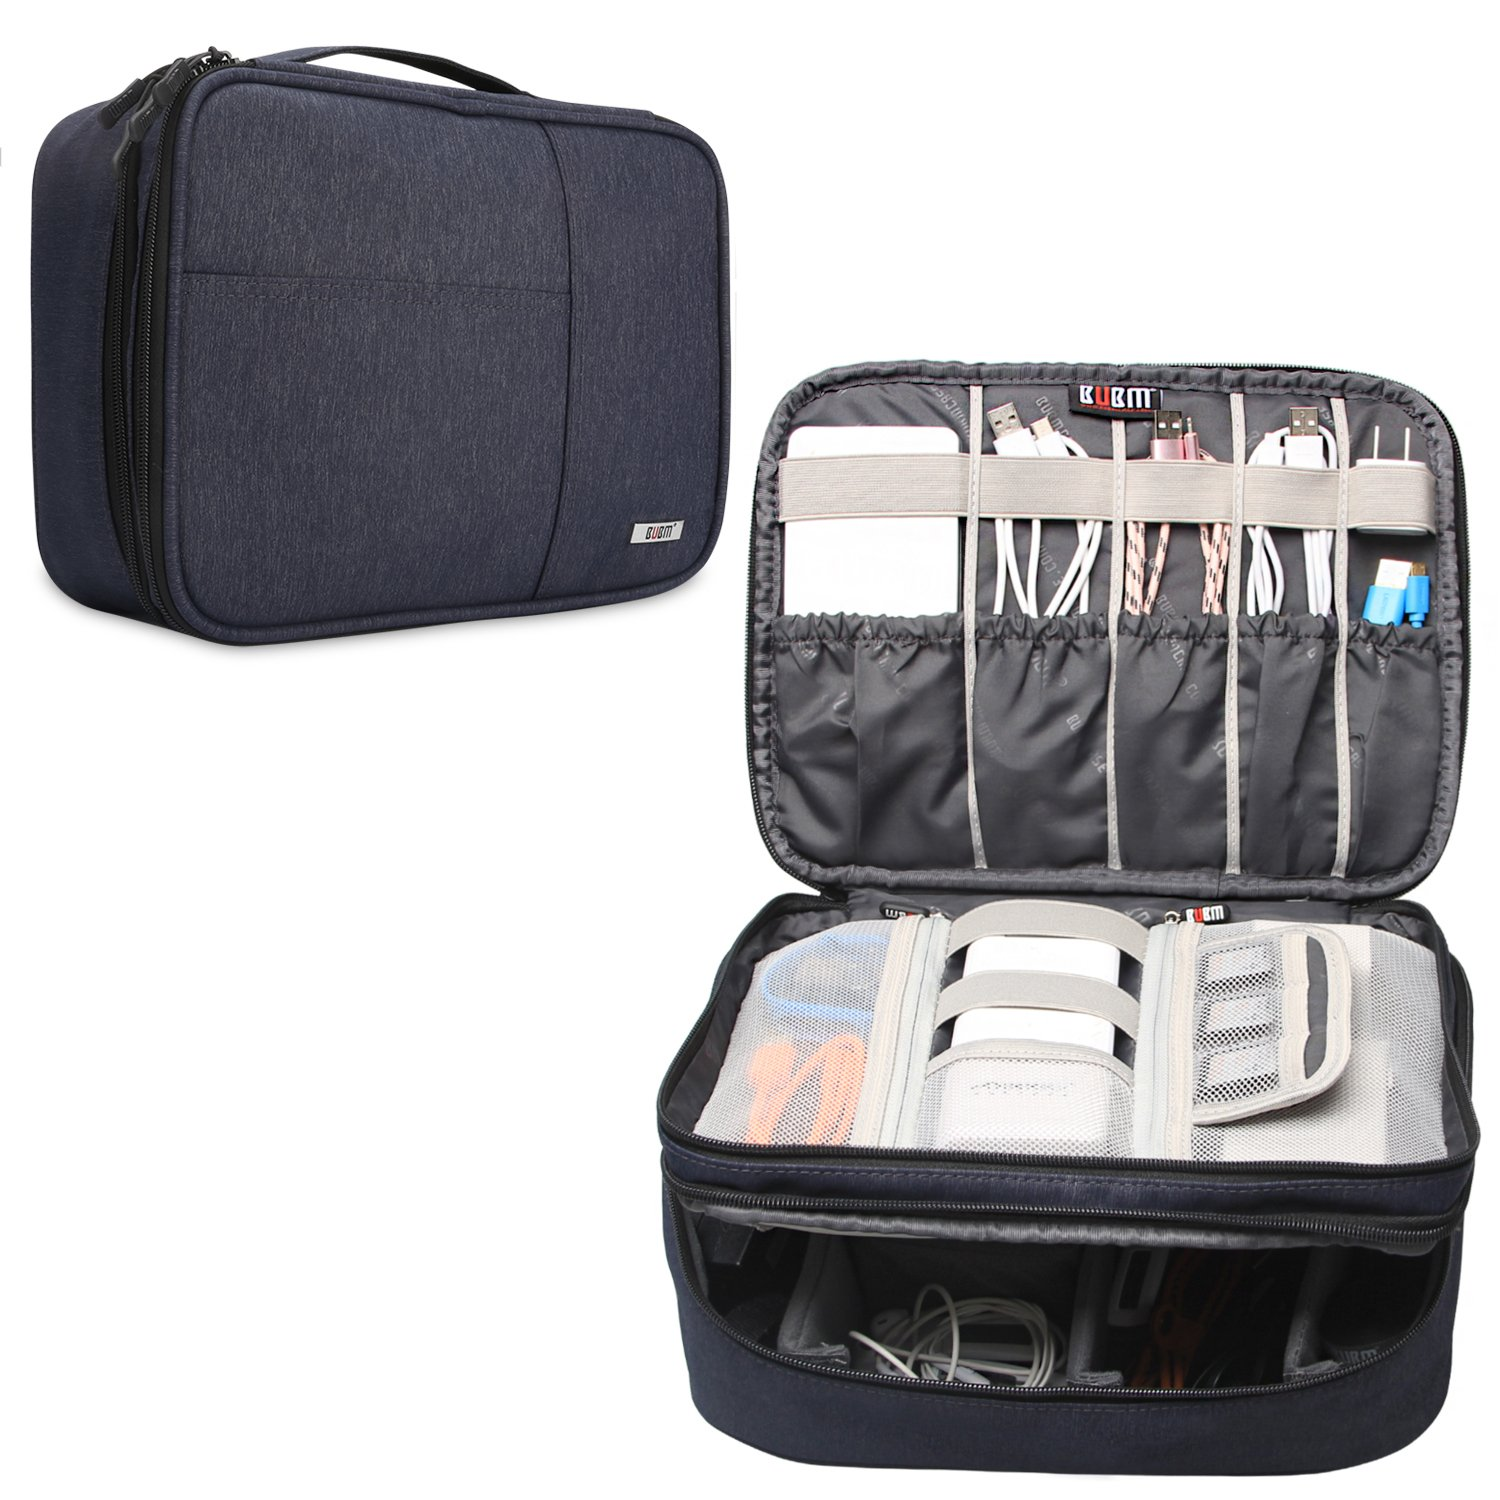 BUBM Travel Organizer, Electronic Accessories Storage Bag for Cord, Memory Card, Power Bank and More, A Pouch fits for iPad Pro (Extra Large,Dark Blue)